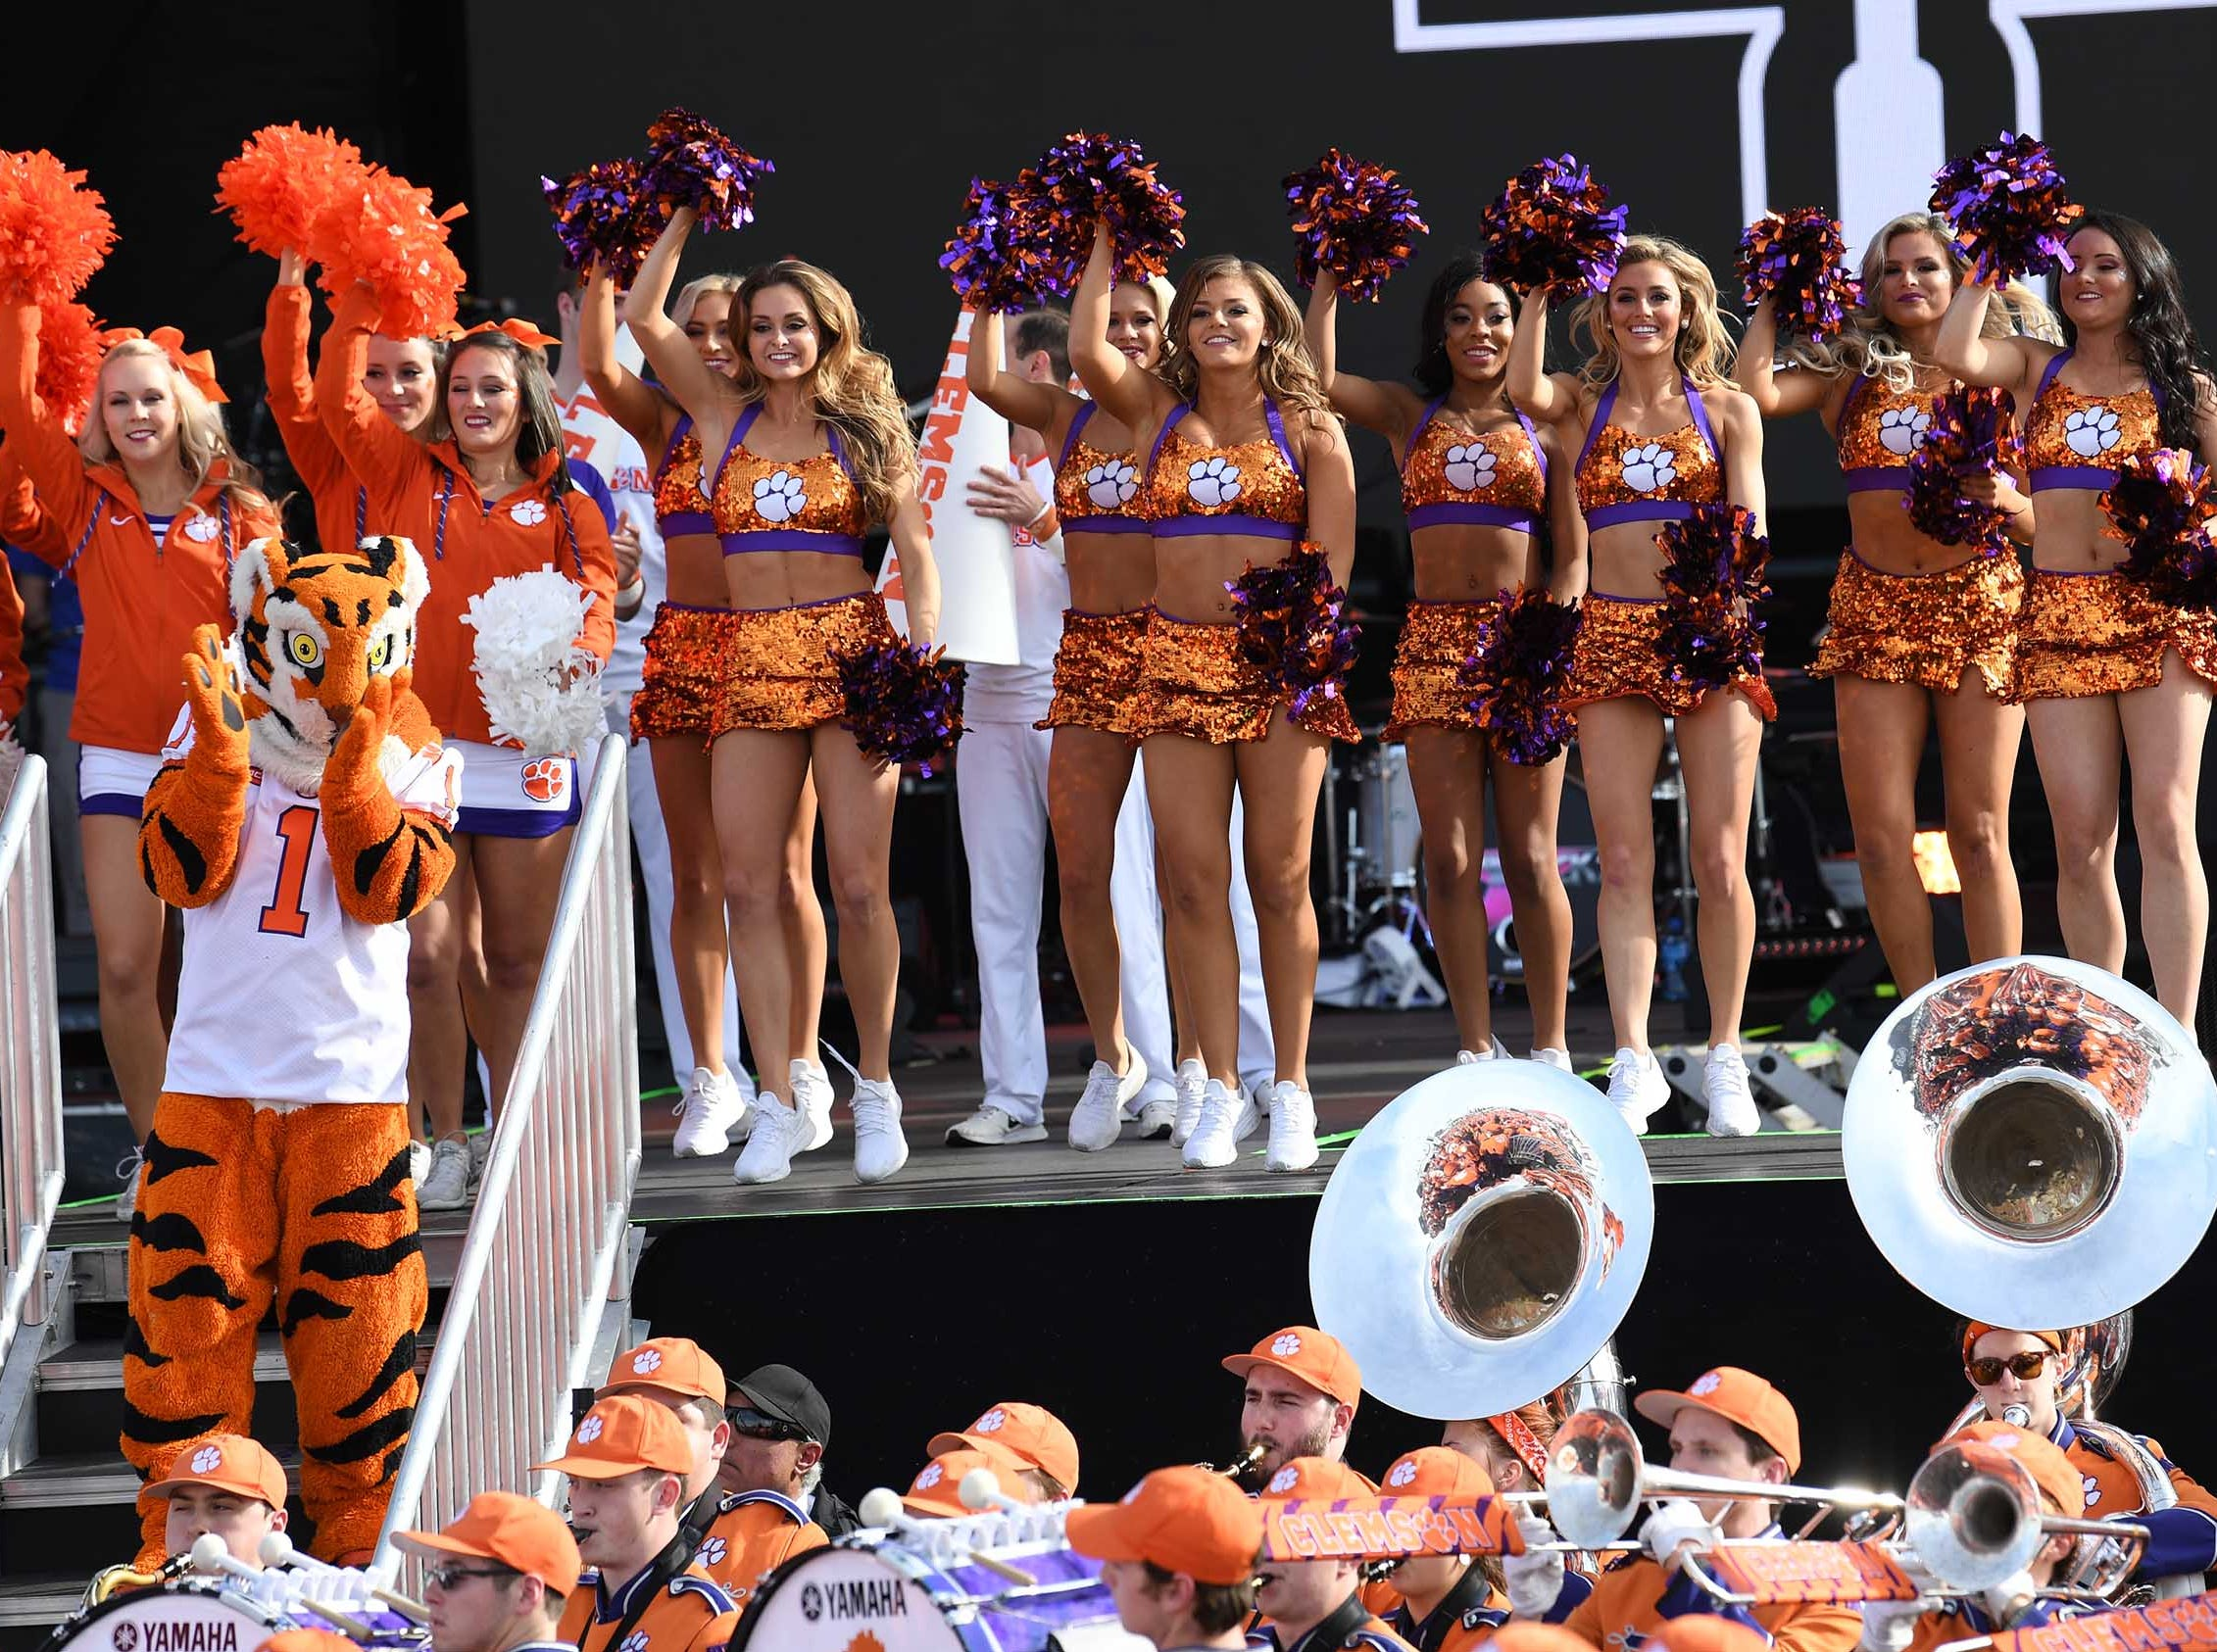 Clemson Tiger Band, cheerleaders, Tiger Dancers, twirlers, and Rally Cats participate with fans at the College Football Championship Playoff Tailgate outside Levi's Stadium in Santa Clara, California Monday, January 7, 2019.